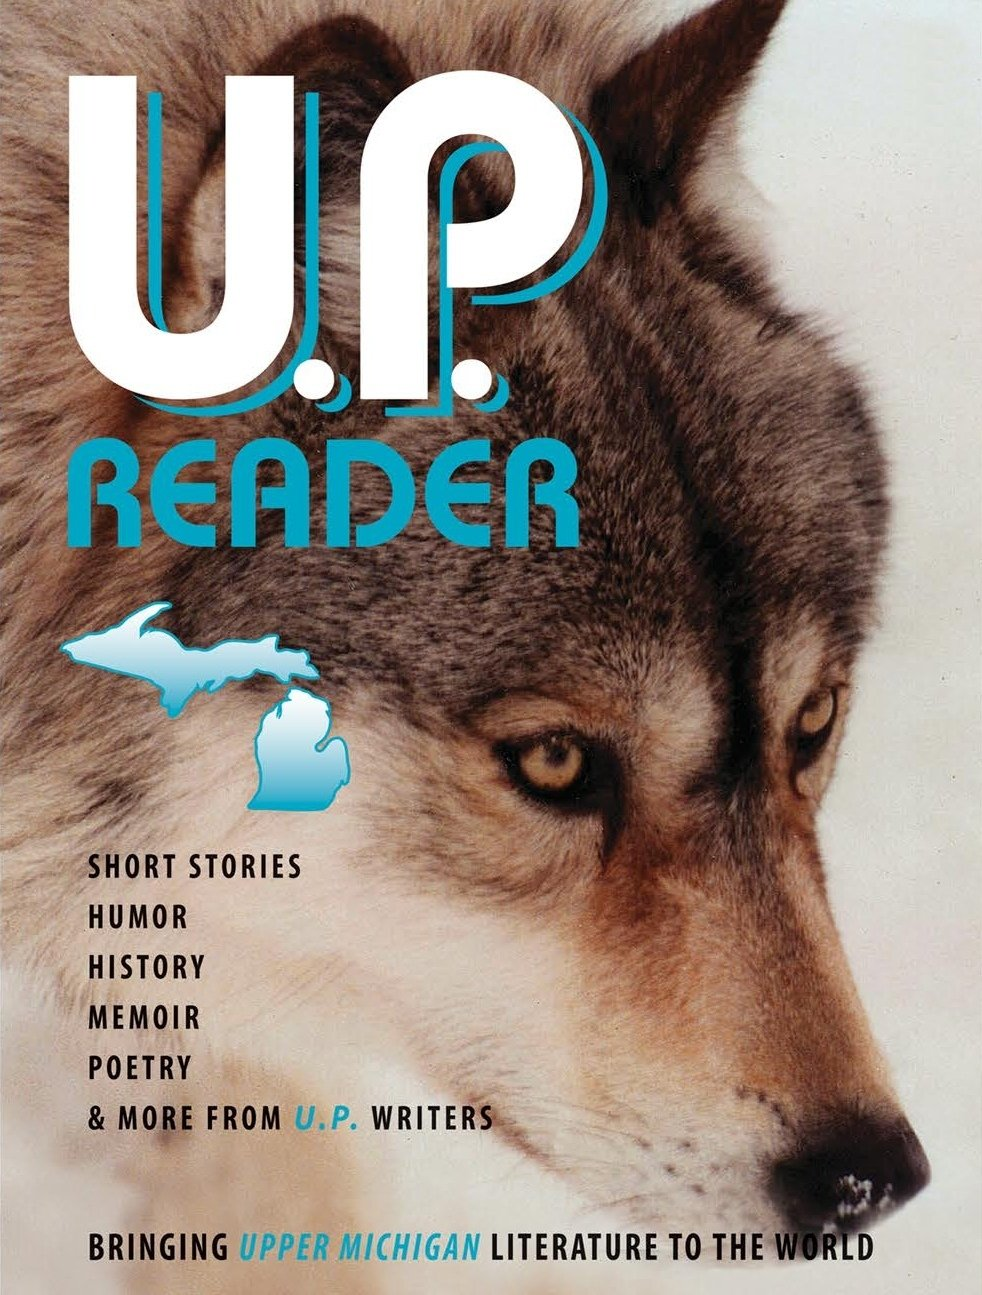 U.P. Reader -- Issue #2 [HC] 978-1-61599-385-7